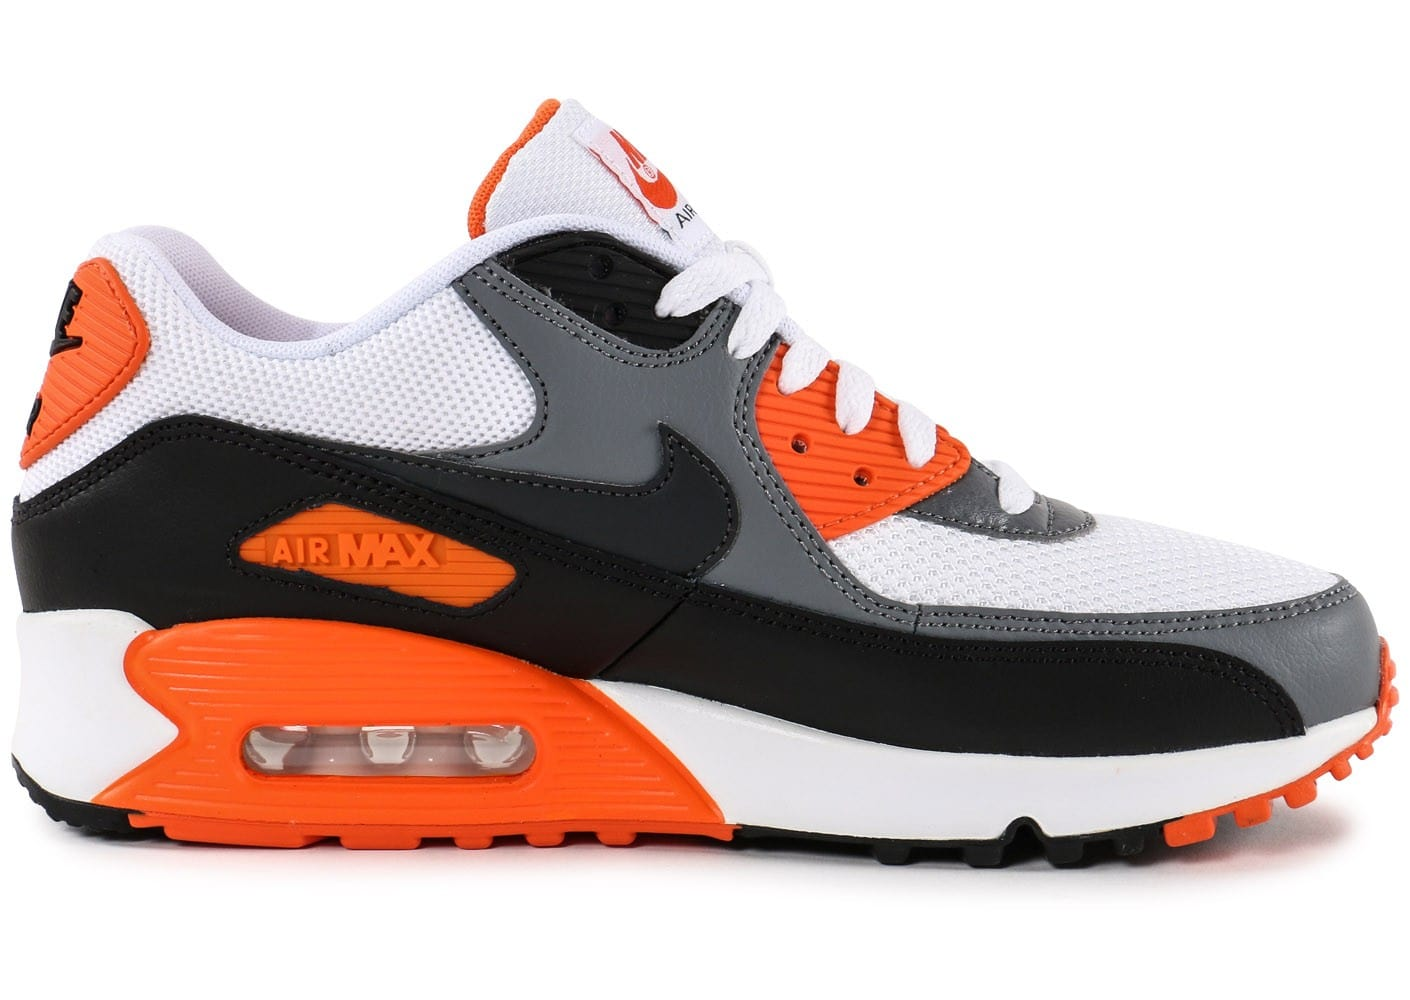 nike air max 90 essential blanc orange chaussures homme chausport. Black Bedroom Furniture Sets. Home Design Ideas